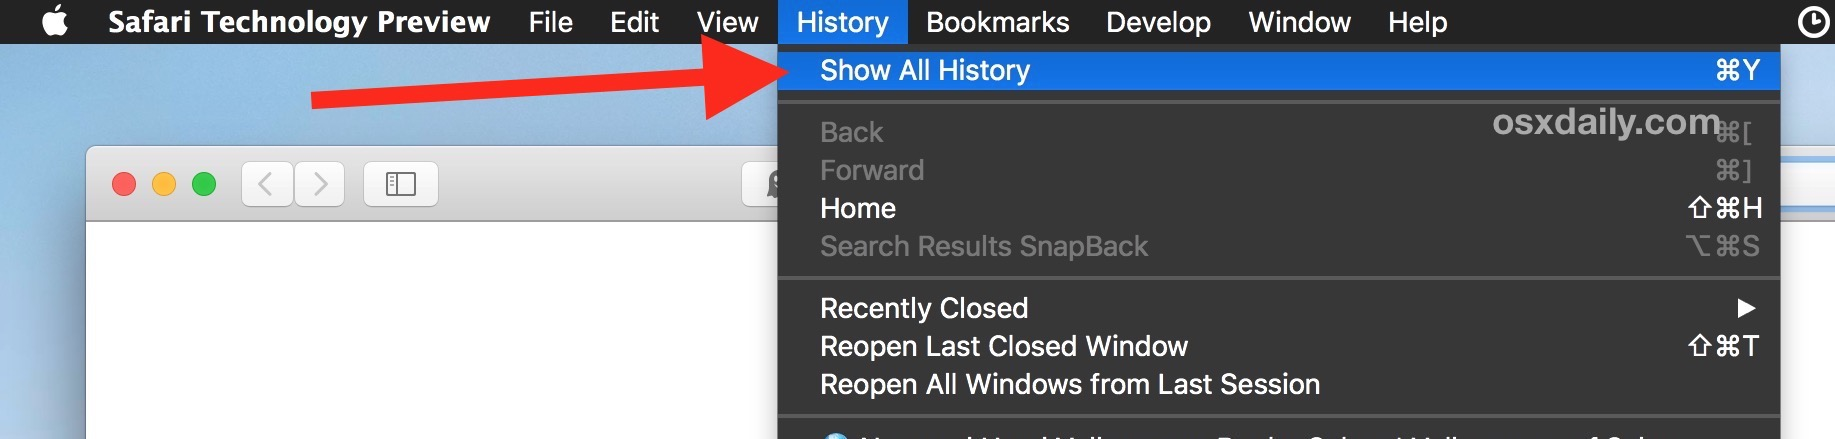 How to show all Safari History on Mac